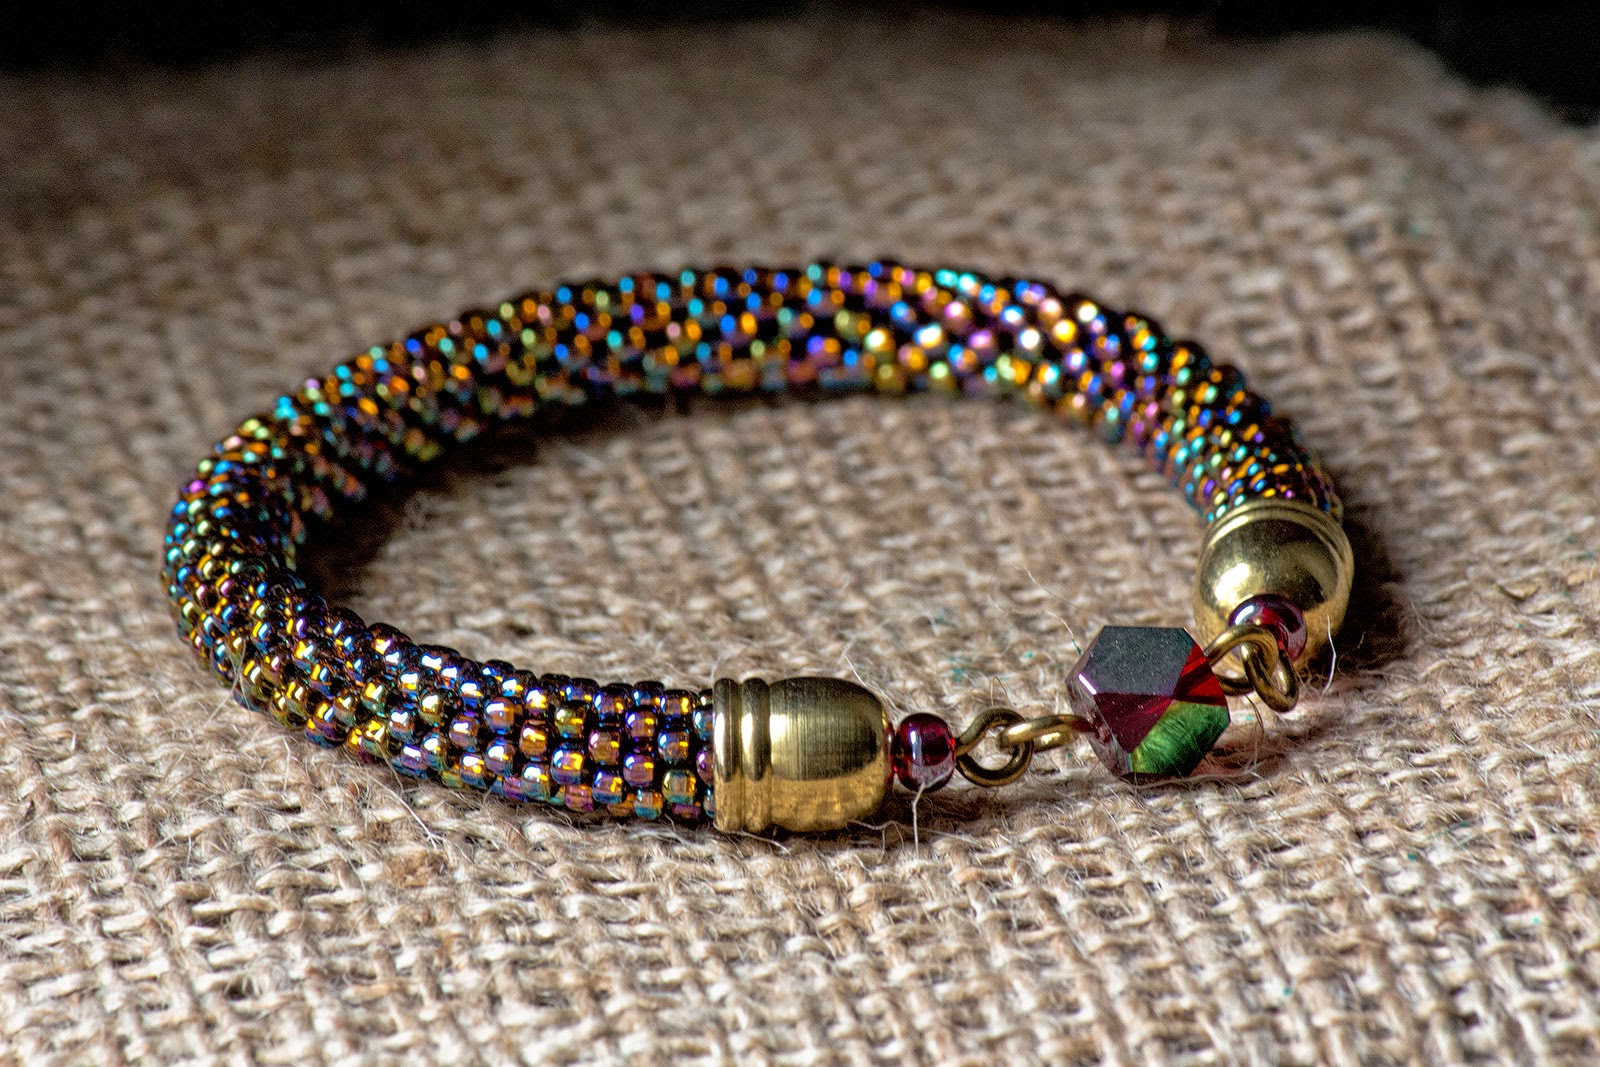 etsy shop beads crochet crocheted rope handmade handcrafted jewellery bracelet jewelry beadwork rainbow seed beads czech fashion chic